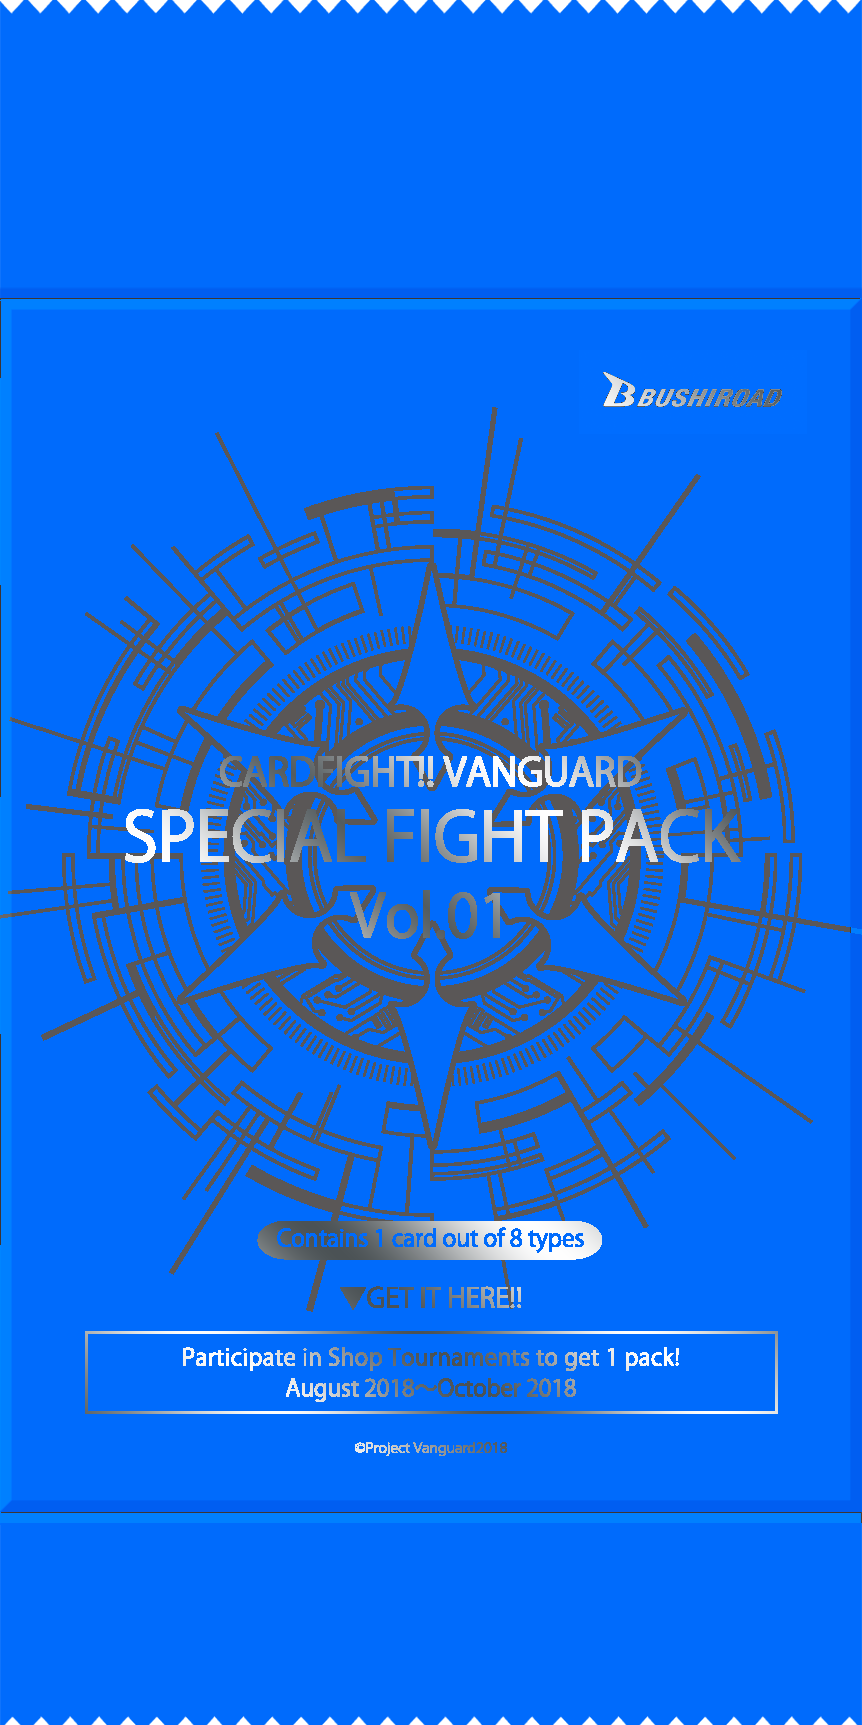 Special Fight Pack Vol 01